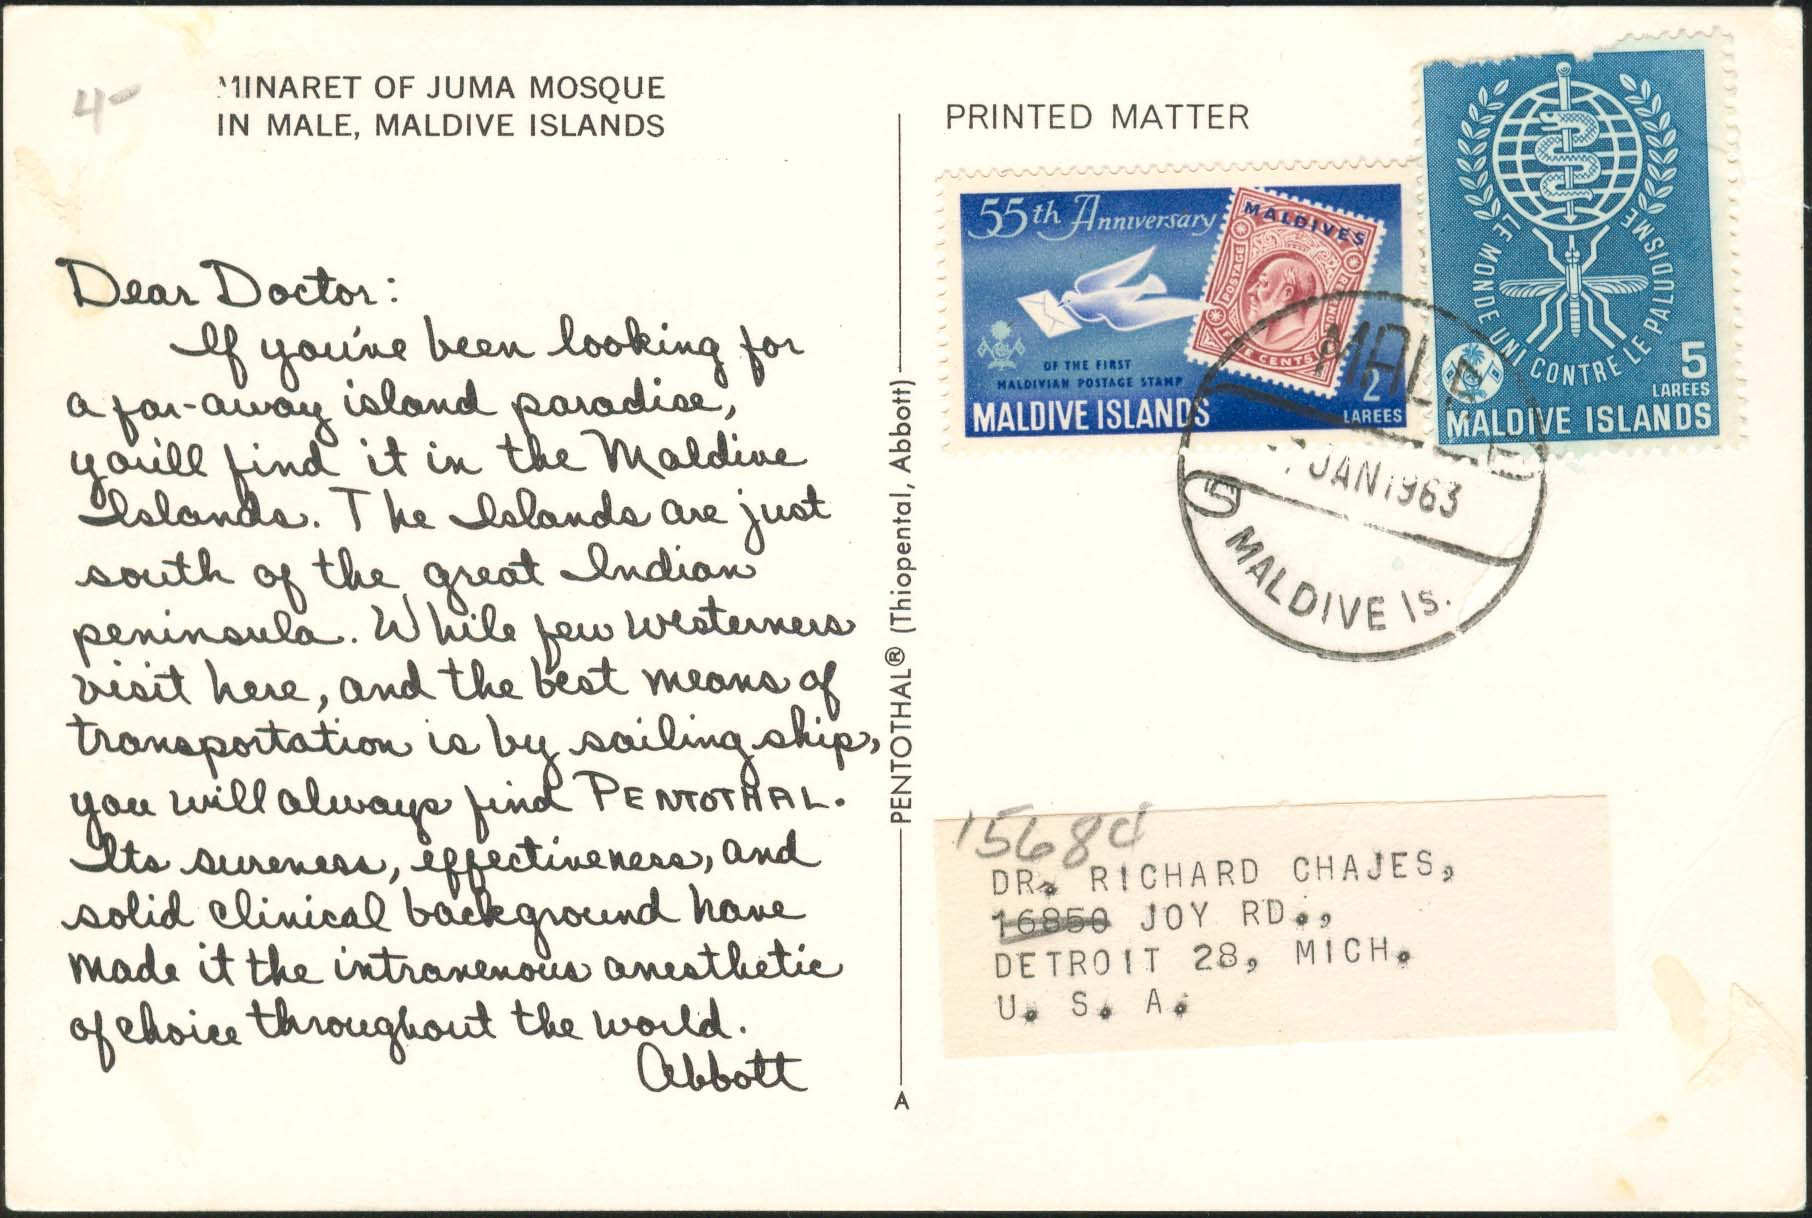 Dear Doctor Postcard - Type A - United States - 1963, Jan 7